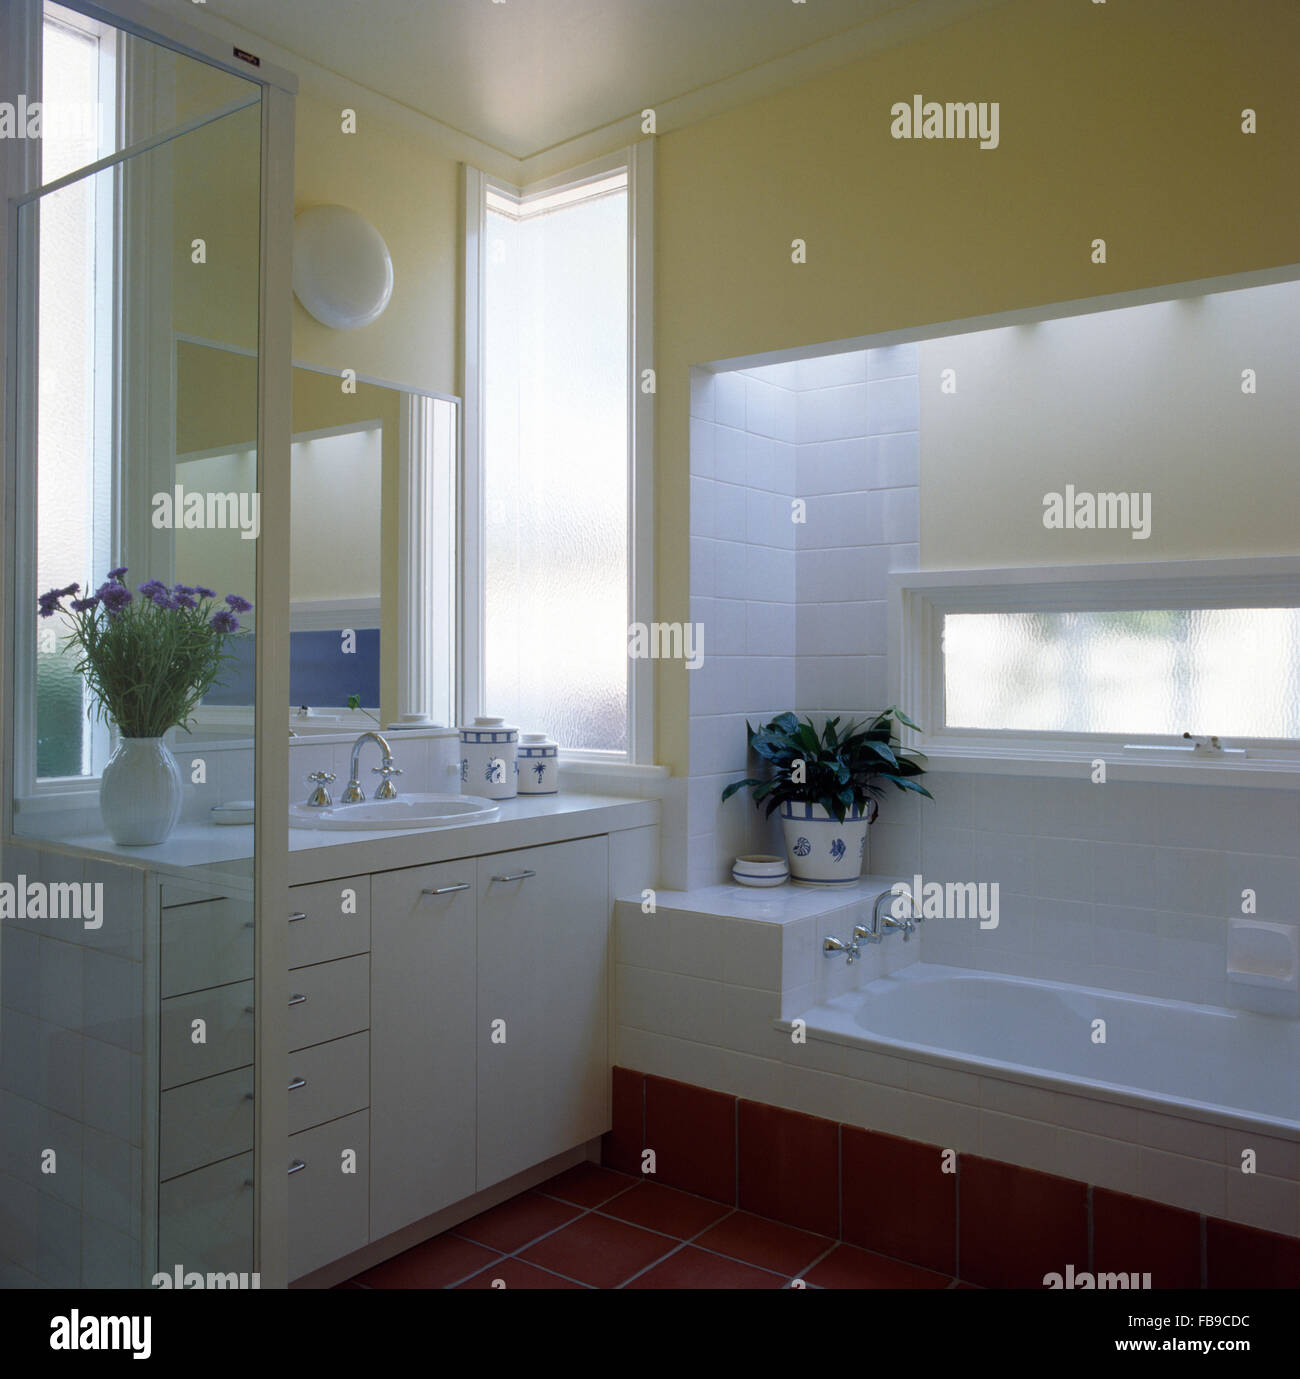 White vanity unit and tiling in pale yellow nineties bathroom with a narrow window above a low fitted bath - Stock Image